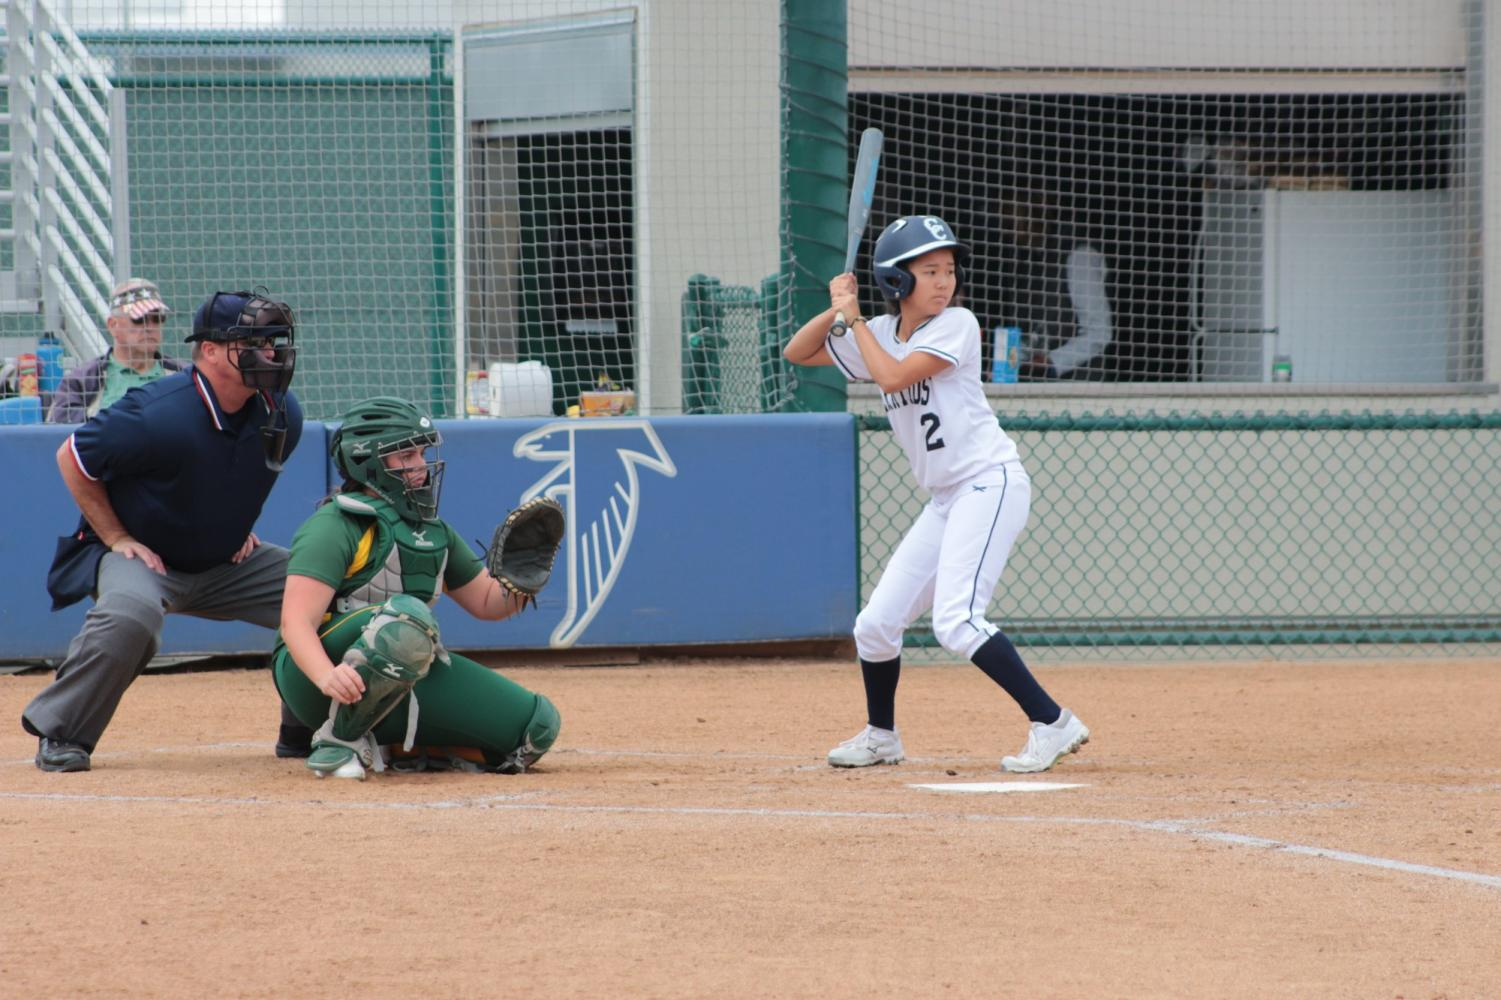 No. 2 Emma Wolff steps up to the plate during a game against Grossmont College. The Falcons won 4-1.